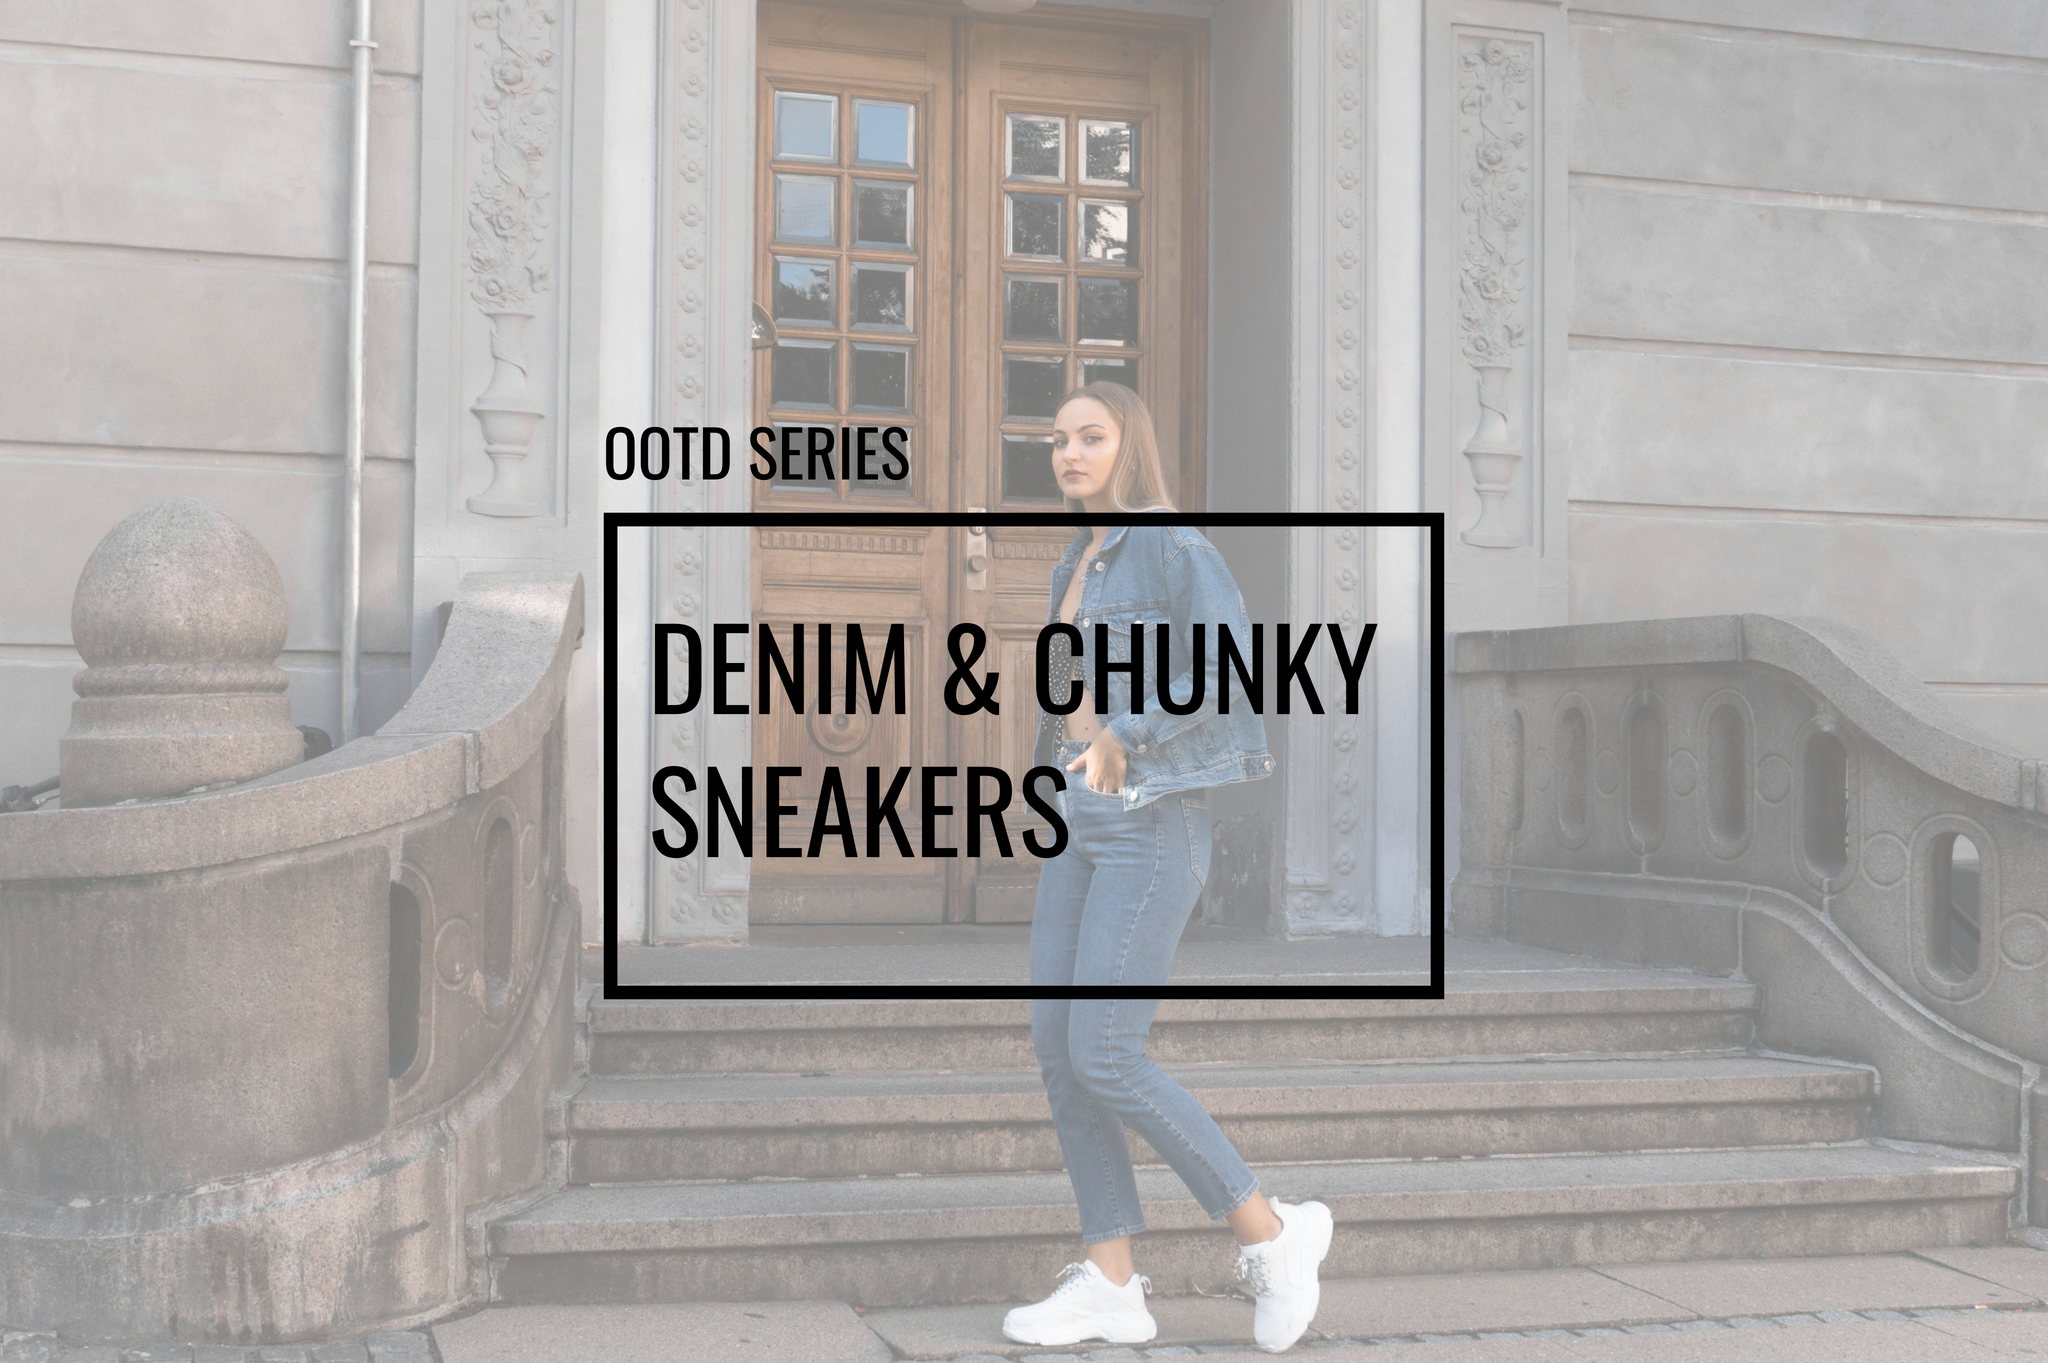 chunky sneakers nelly review big sneakers scandinavian style balenciaga like sneakers denim on denim all denim